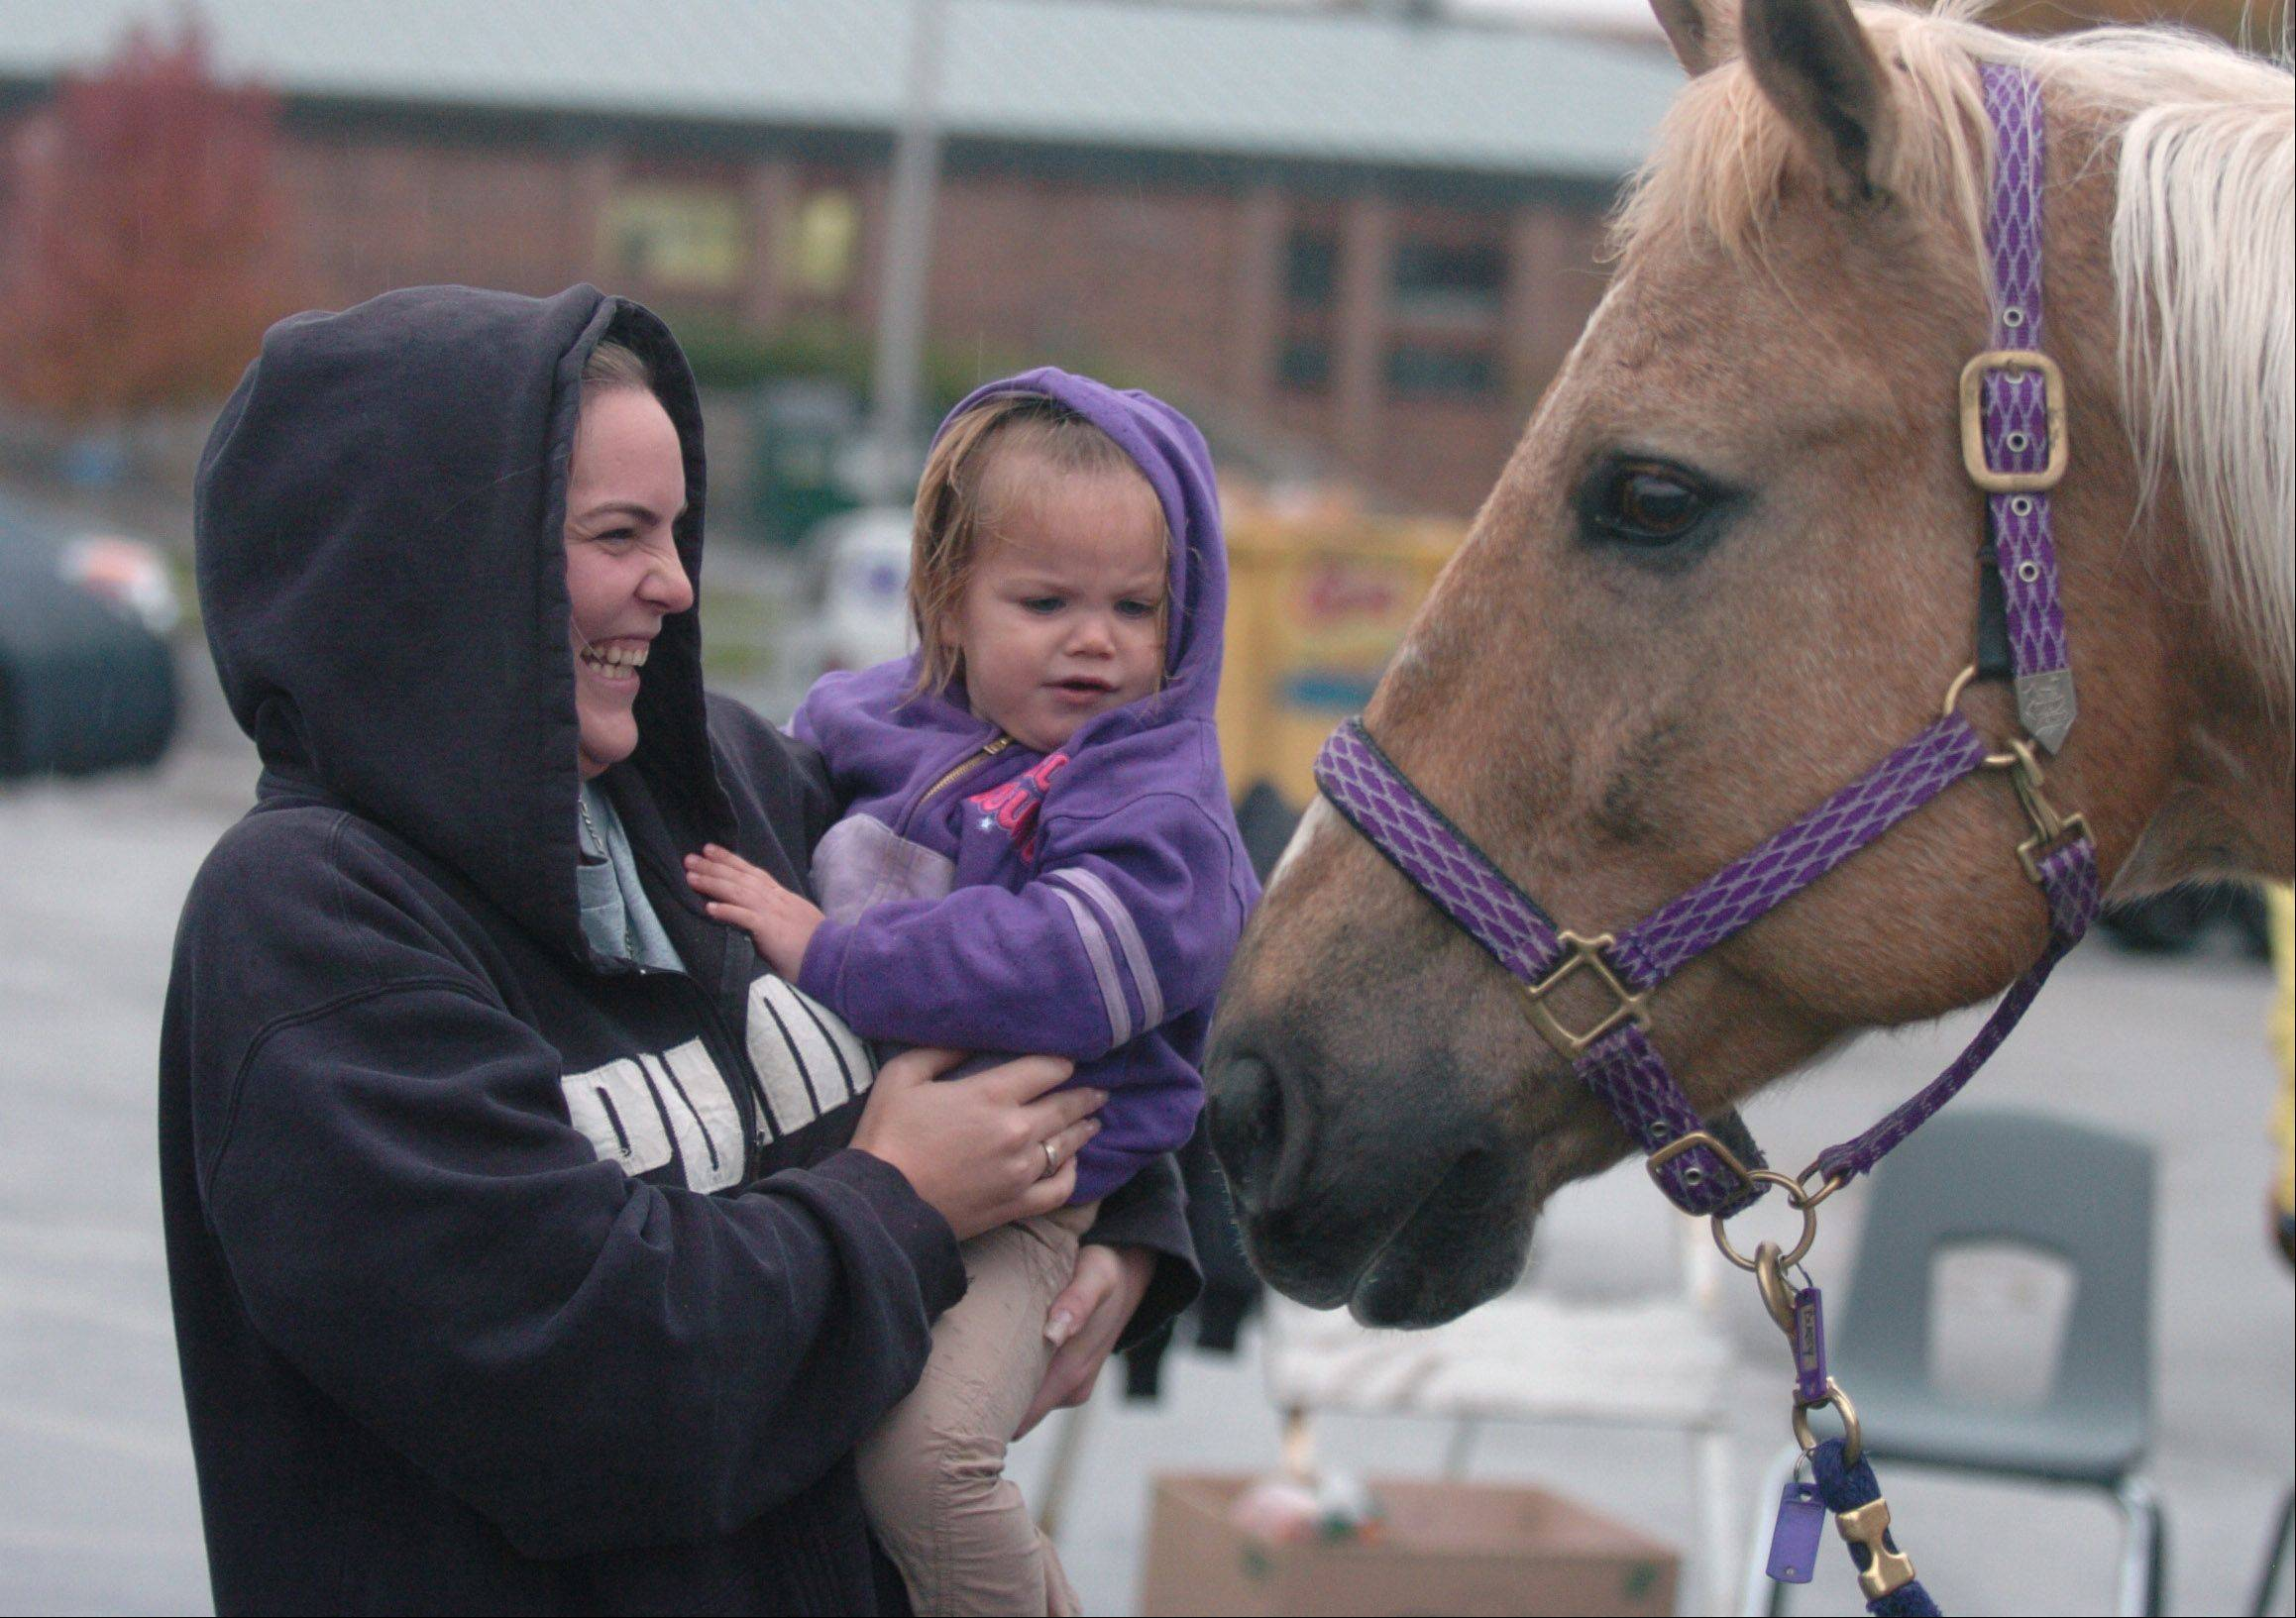 The Dupage Children's Museum hosted the folks from Ready Set Ride, a therapeutic recreation facility in Plainfield. They were letting children pet horses in honor of Disability Awareness Month. Dana And her daughter Allie, 2, both of Lombard stop to pet the horses in the rain.